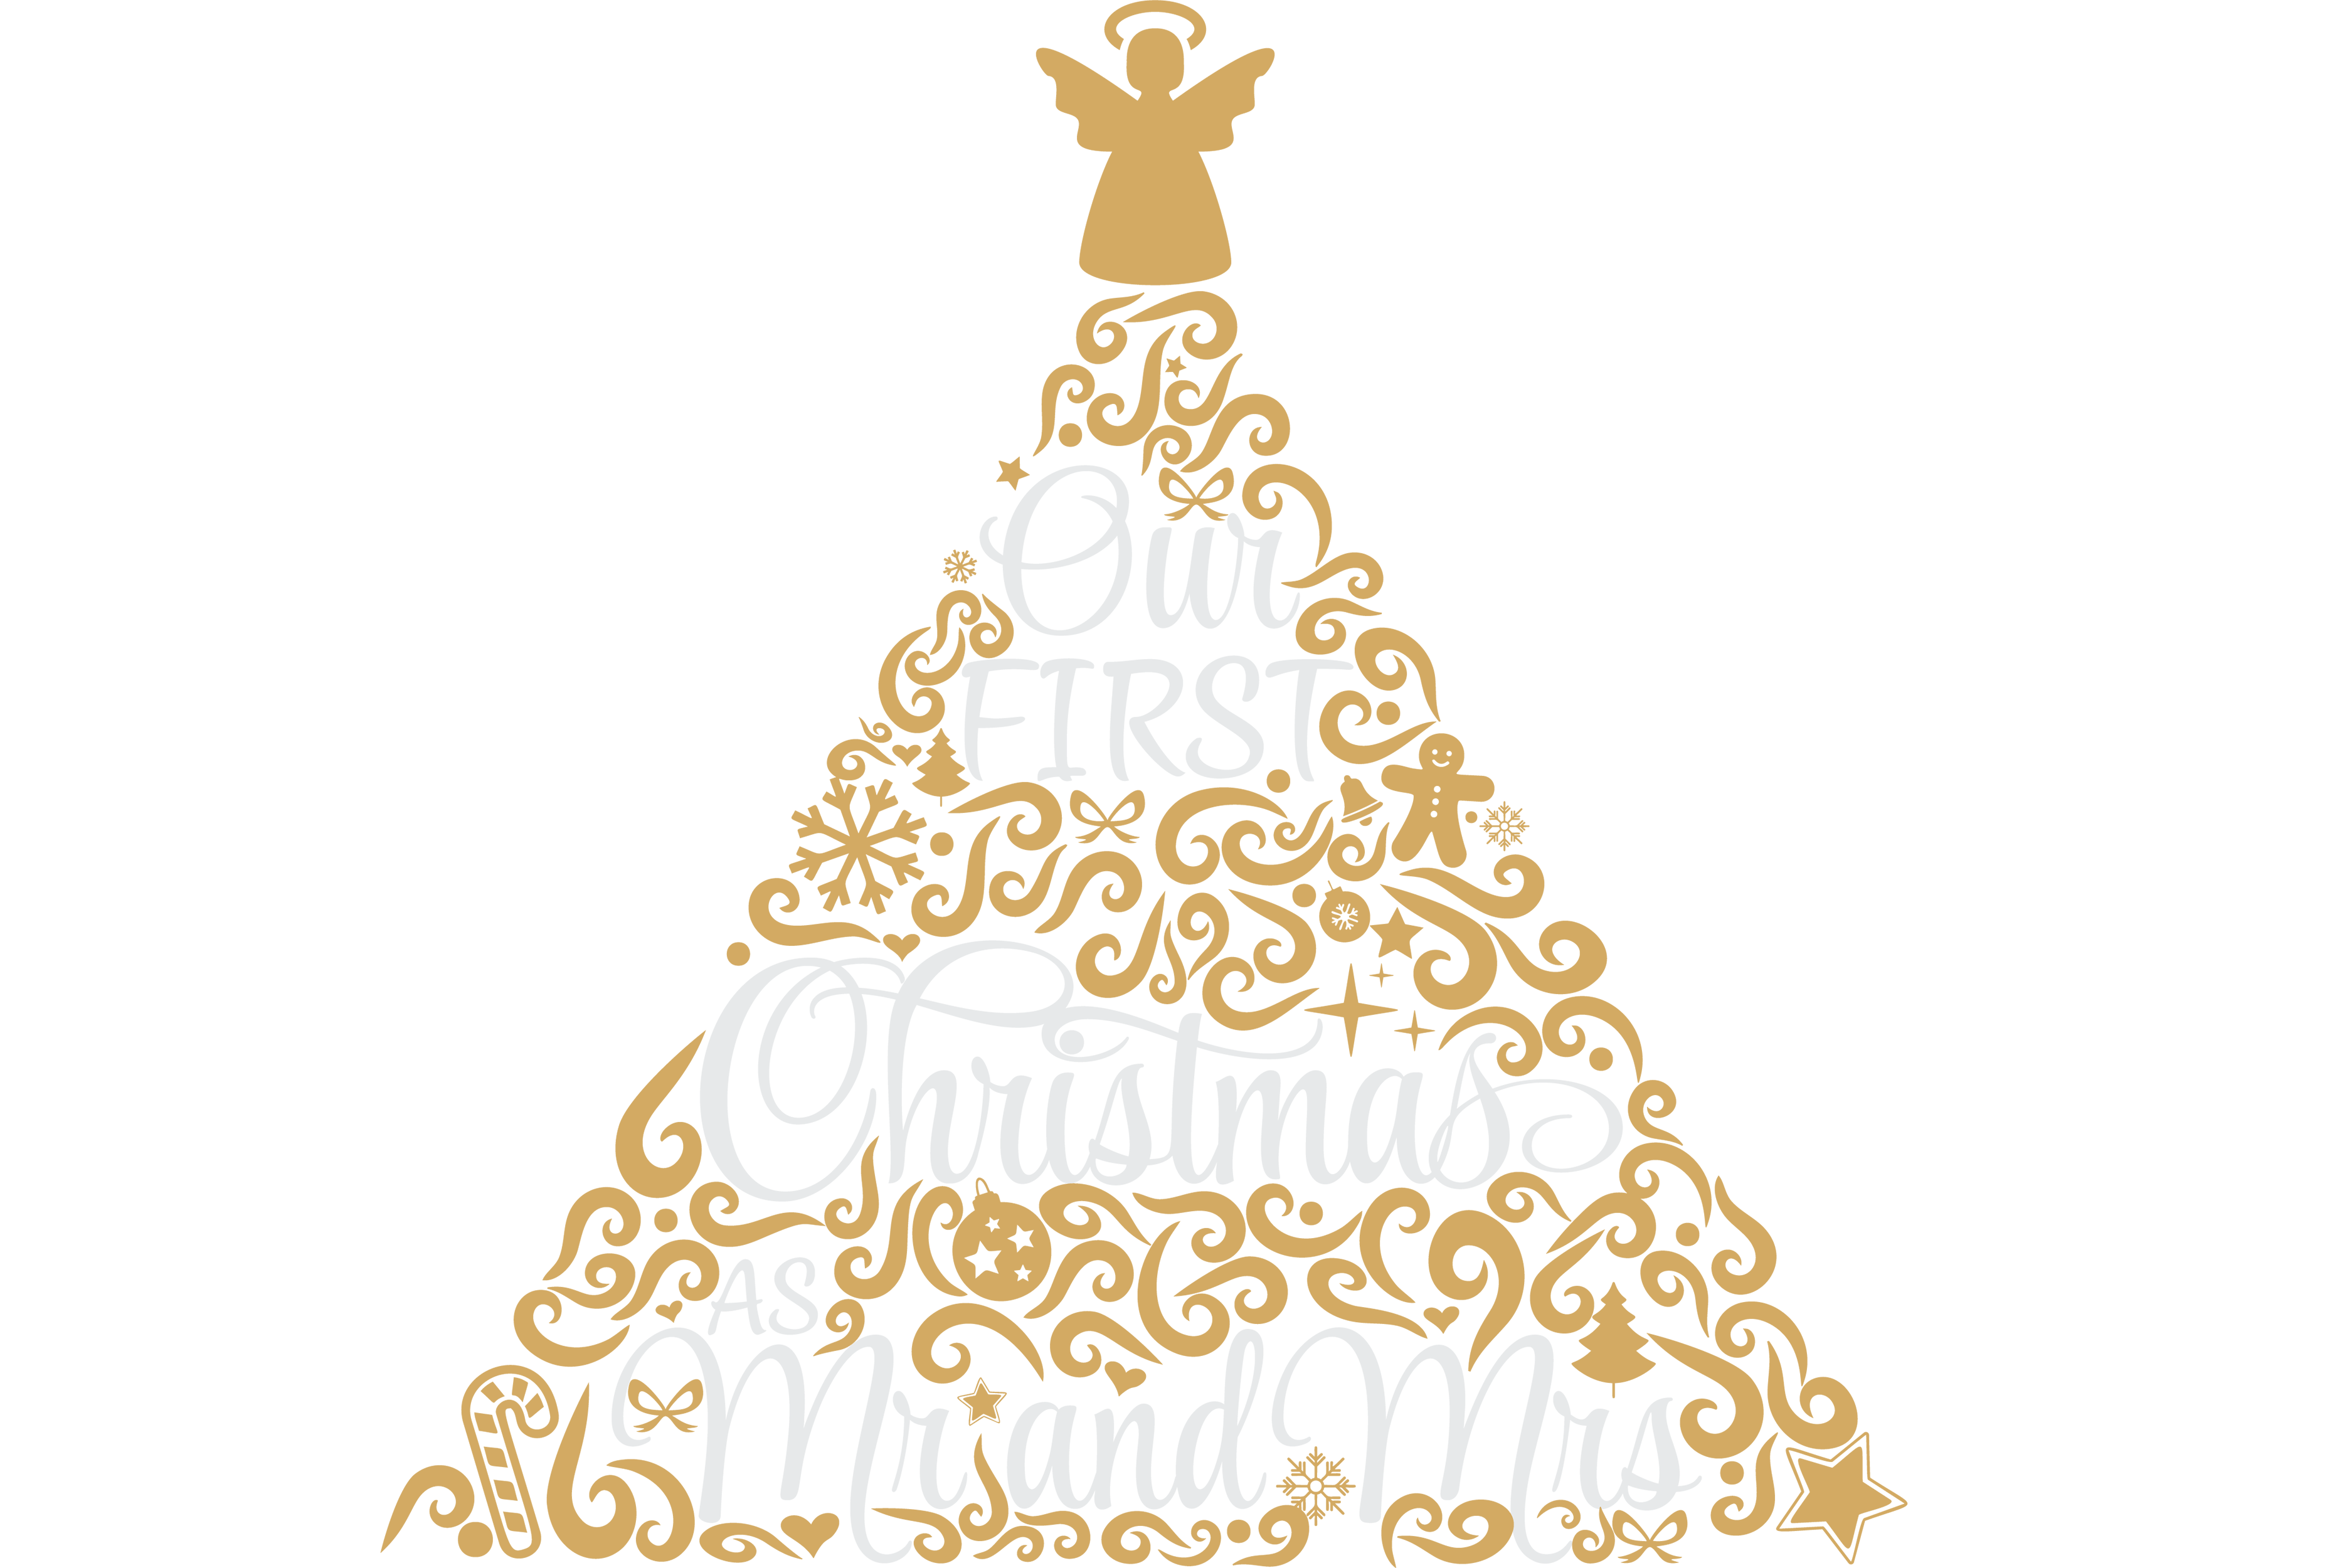 Download Free Our First Christmas As Mr And Mrs Graphic By Angela Wheeland for Cricut Explore, Silhouette and other cutting machines.